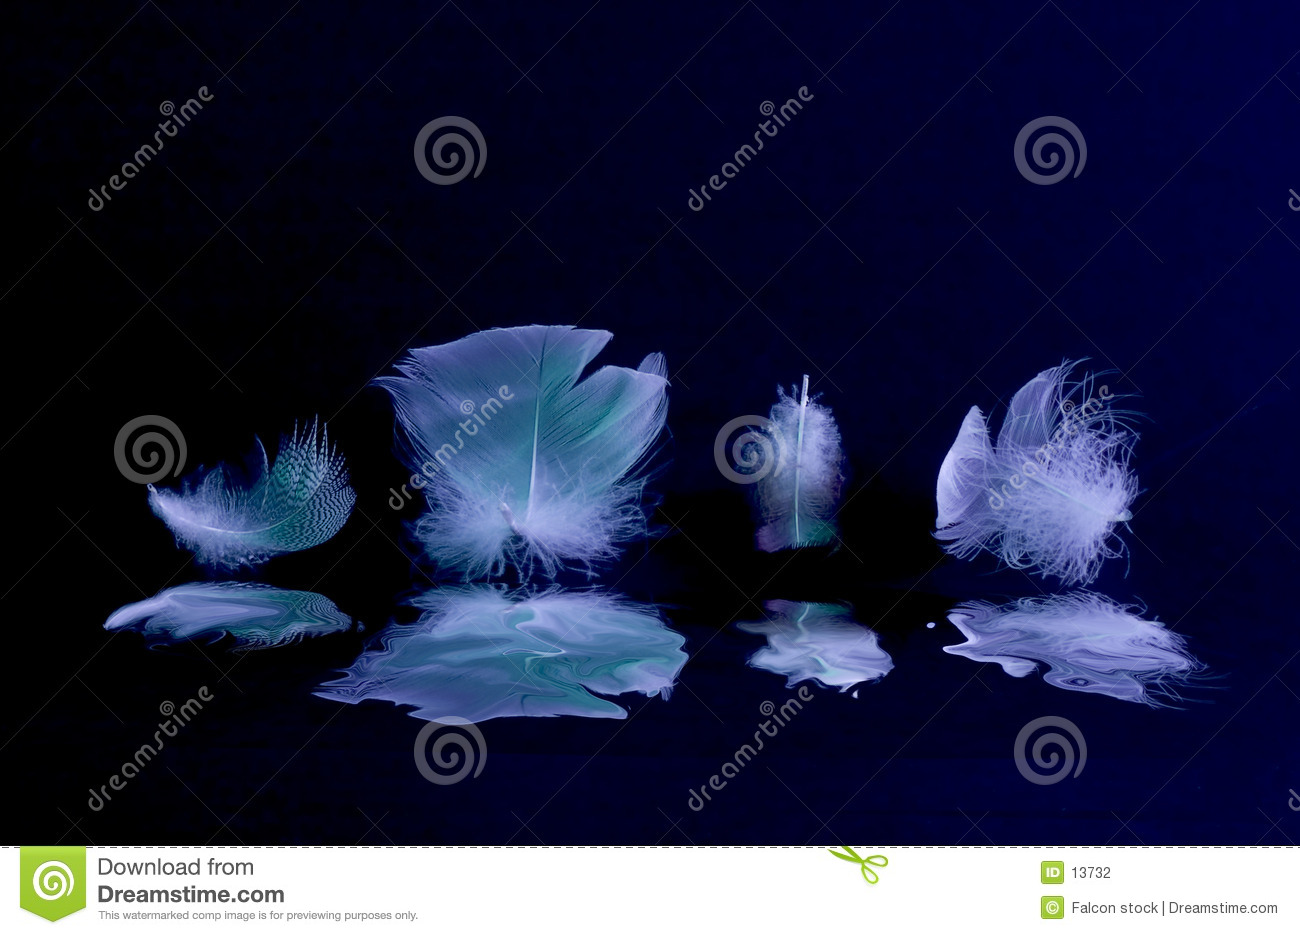 Liquified Feathers